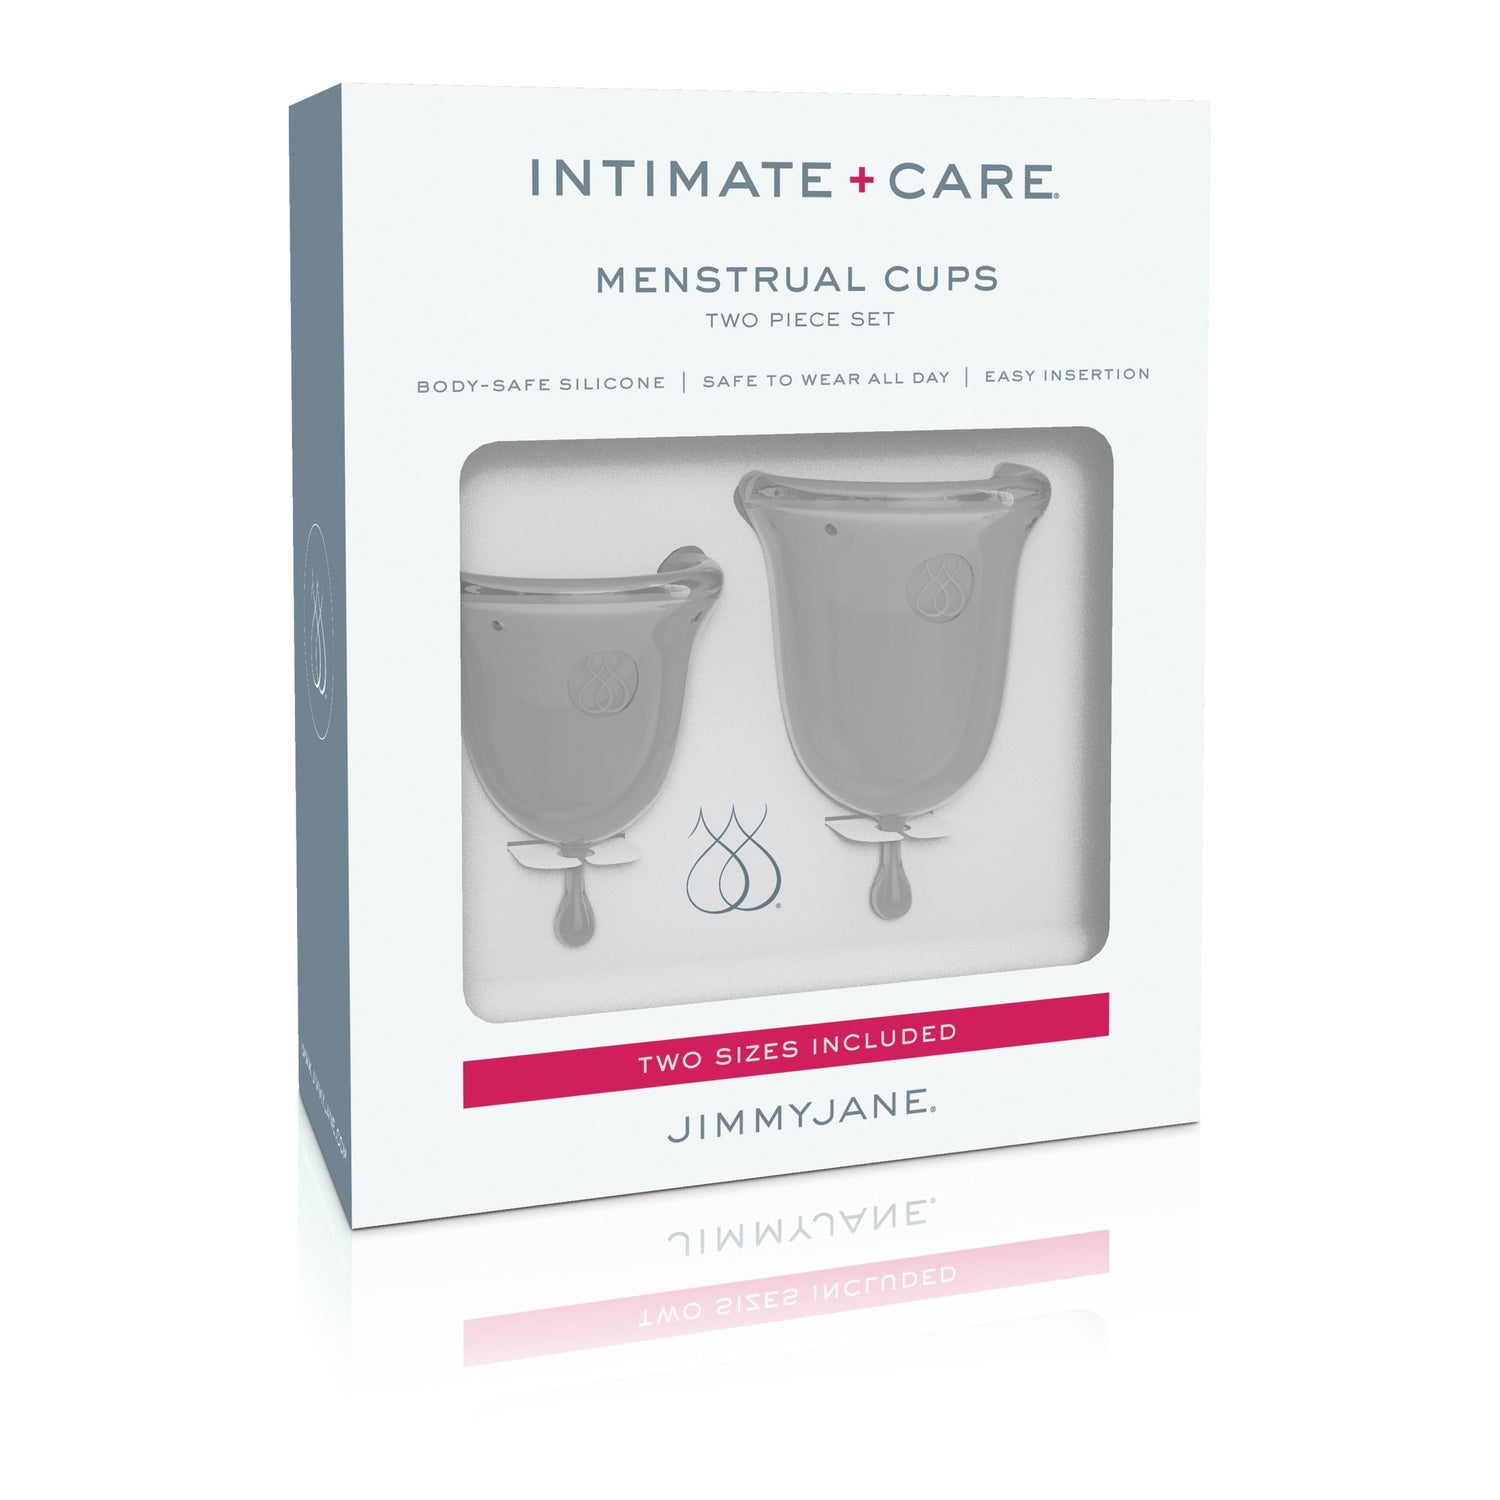 JimmyJane - Intimate Care Menstrual Cups (Clear) | CherryAffairs Singapore